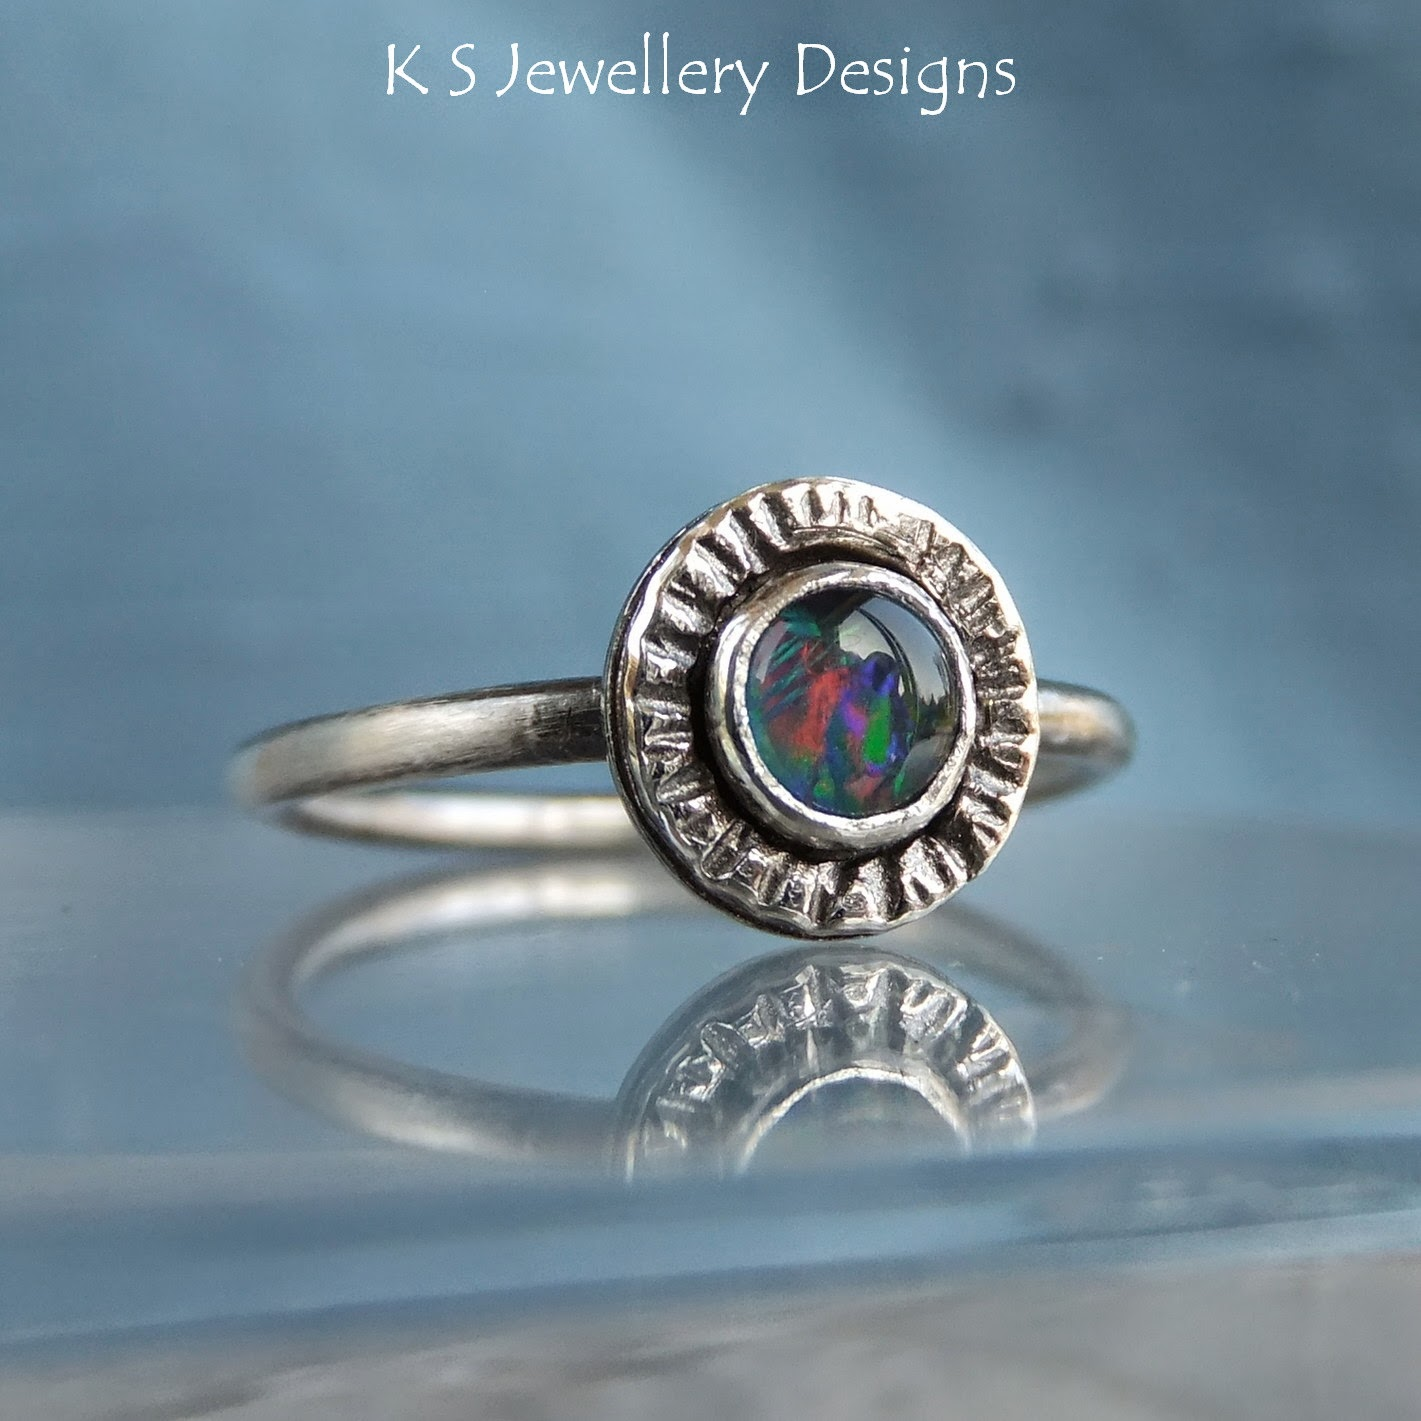 http://ksjewellerydesigns.co.uk/ourshop/prod_3198683-Opal-Triplet-Sterling-Silver-Stacking-Gemstone-Ring-MADE-TO-ORDER.html